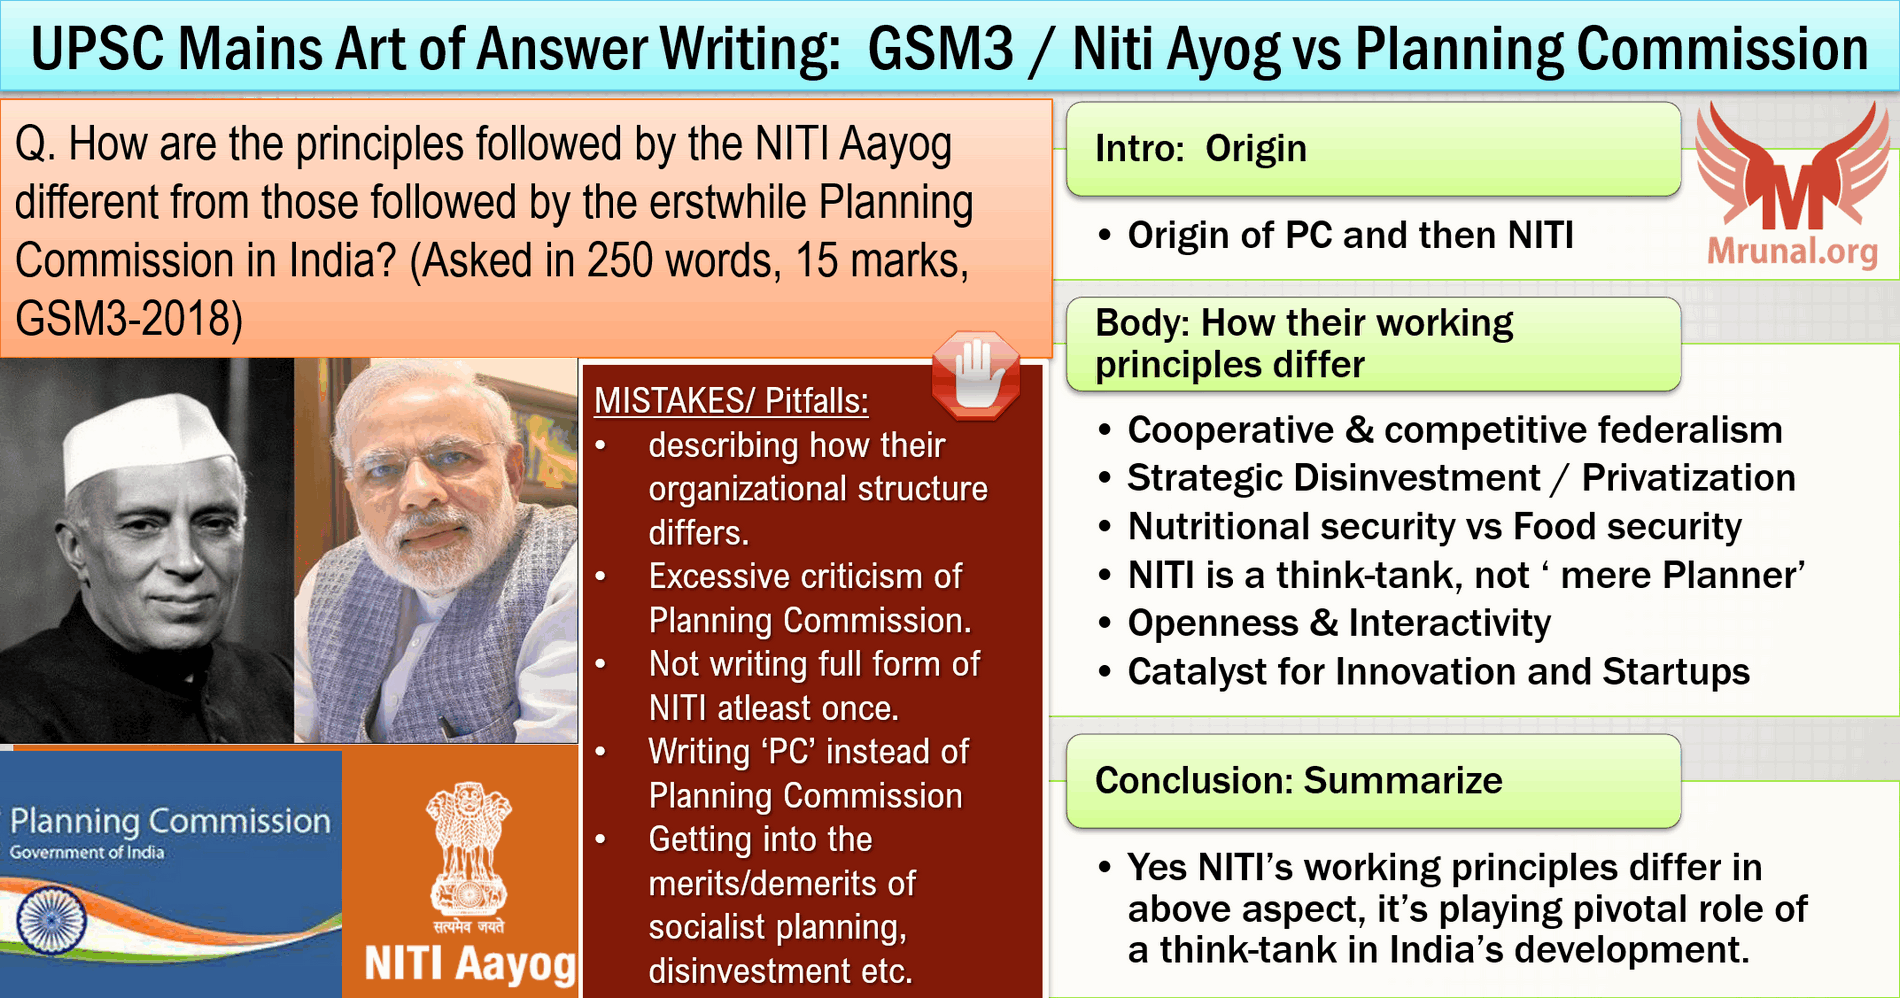 NITI Aayog versus Planning Commission